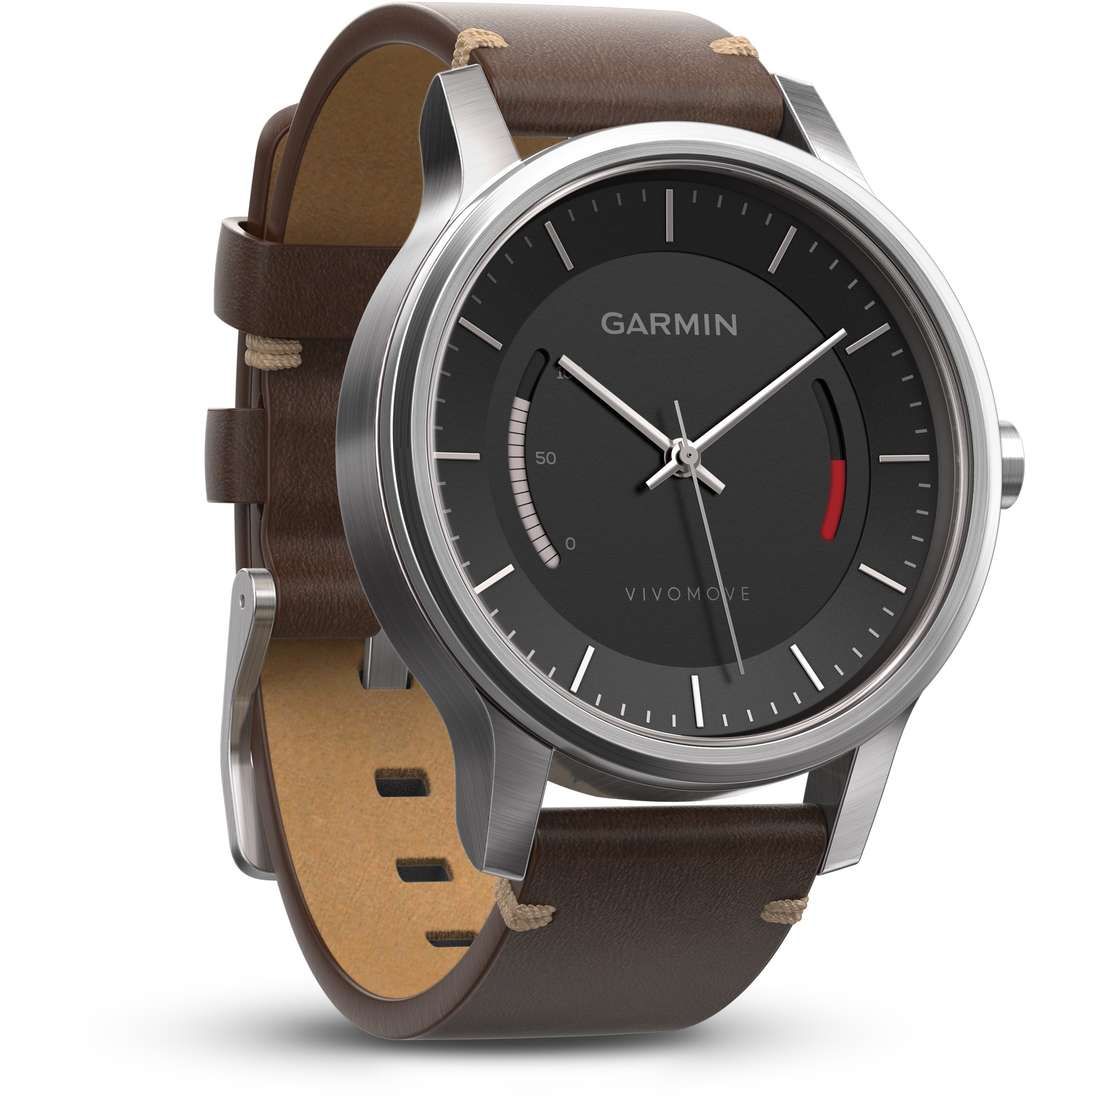 orologio digitale unisex Garmin Vivomove 010-01597-20